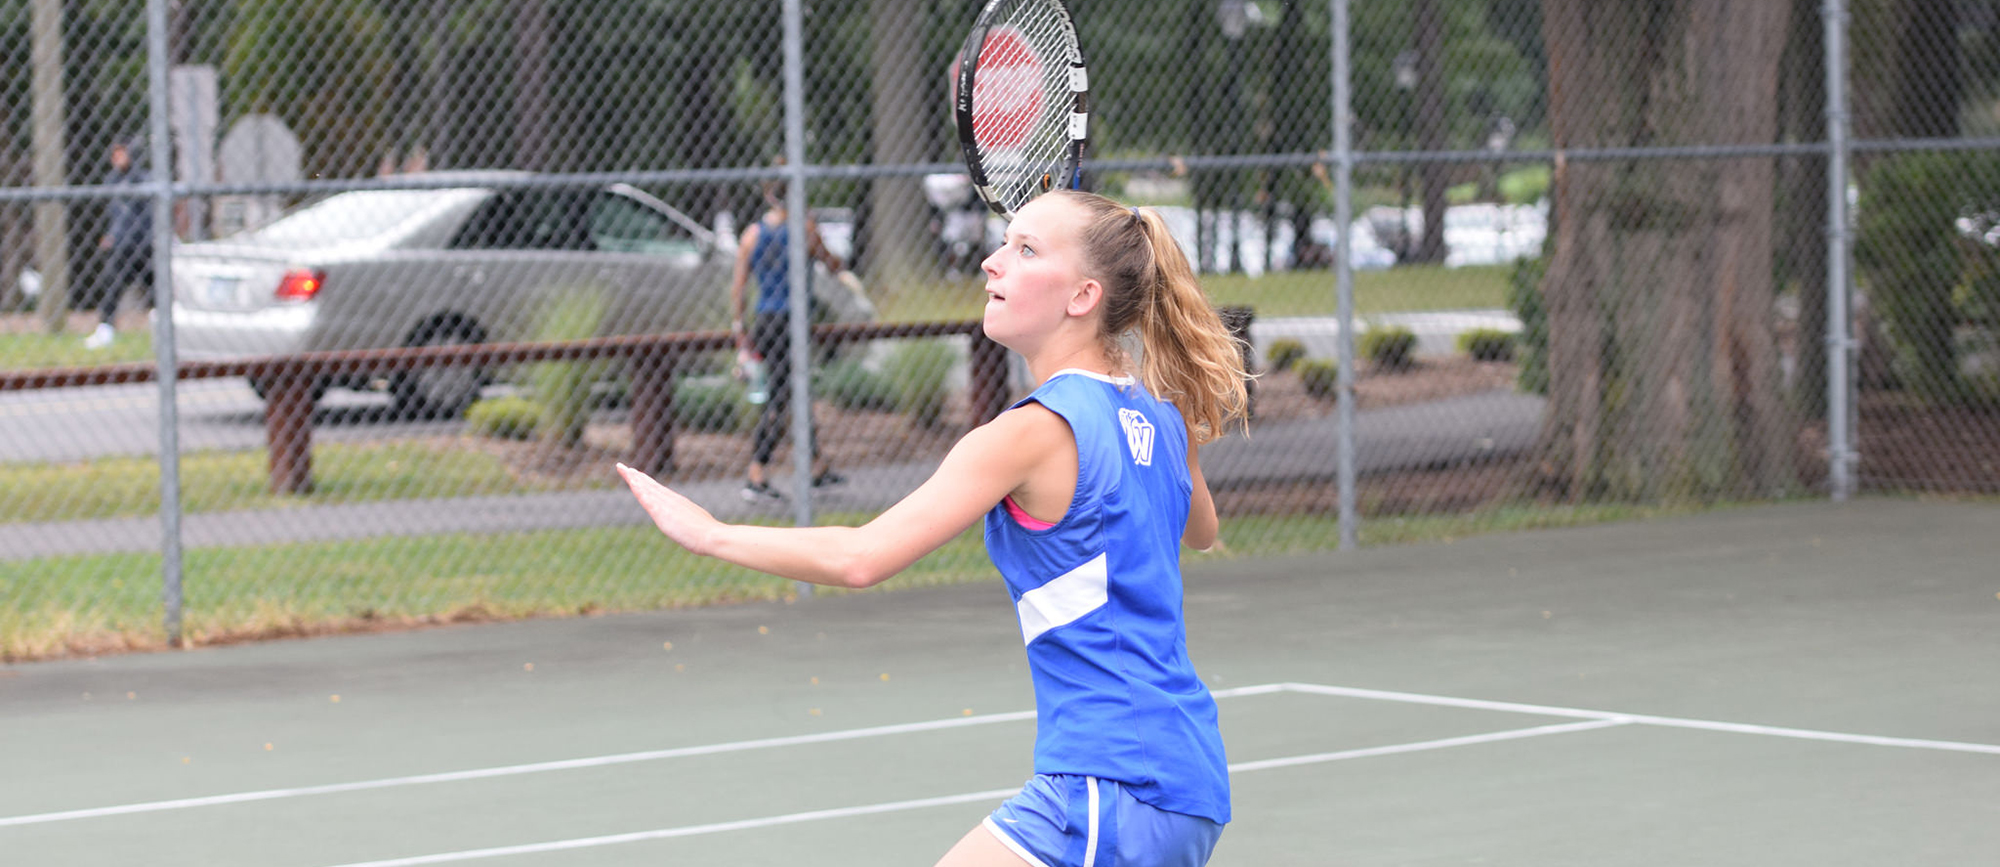 Junior Morgan Schrader was Western New England's lone winner with her victory at No. 2 singles over Alanna Judd of Nichols College on Saturday. (Photo by Rachael Margossian)